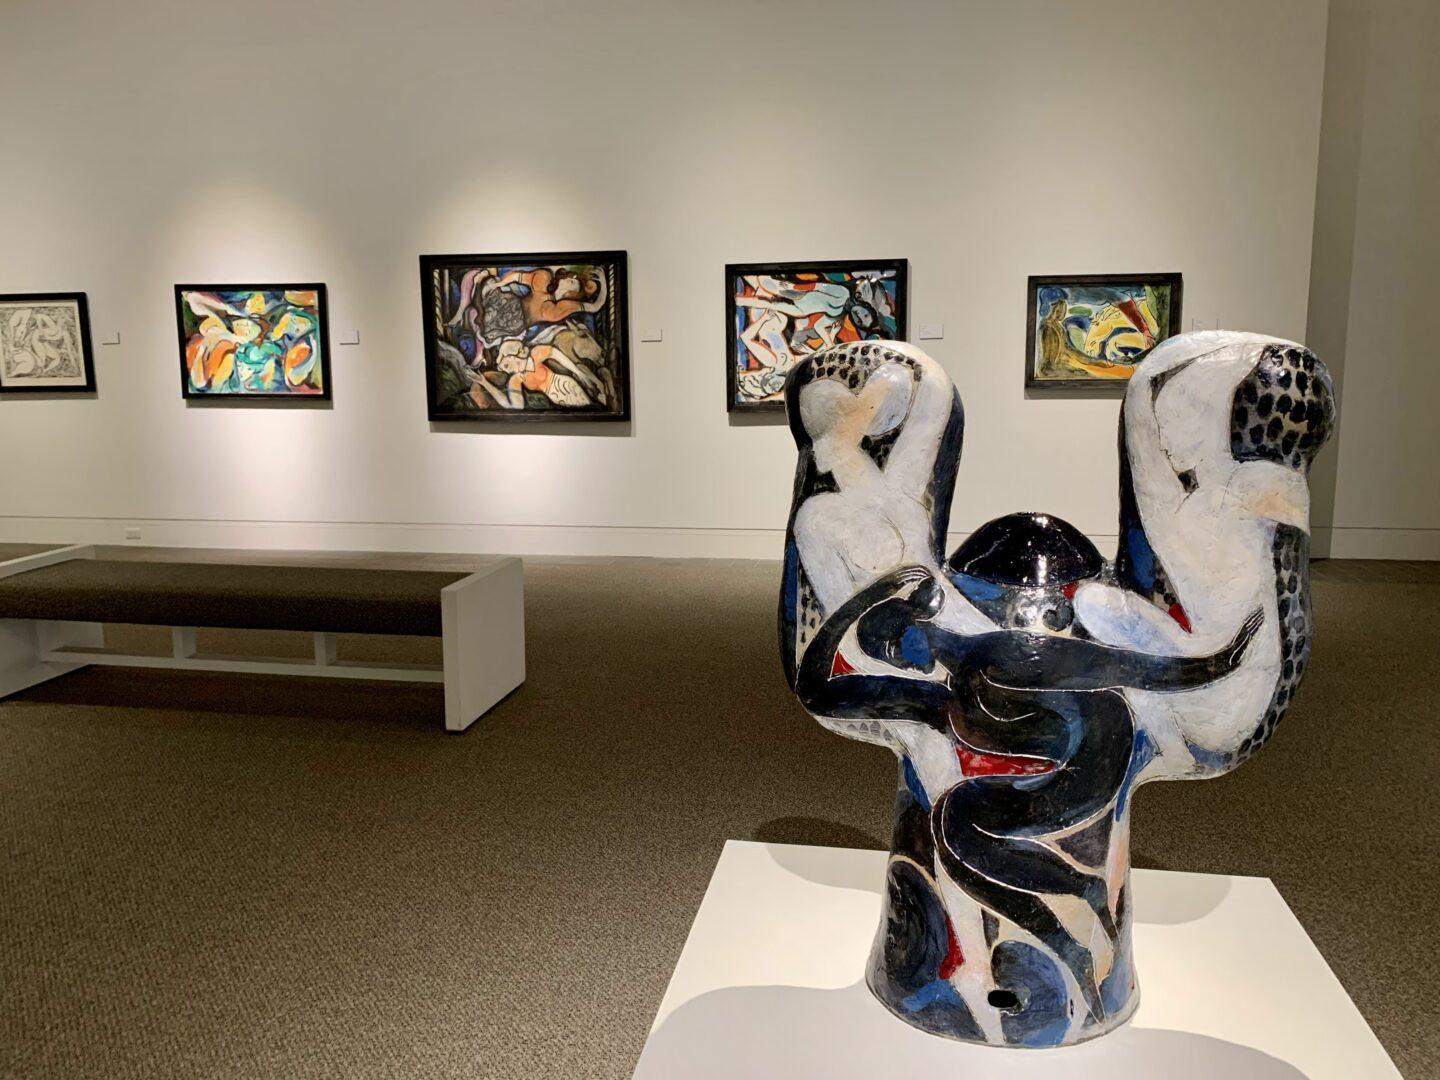 Sculpture and paintings in an indoor art gallery